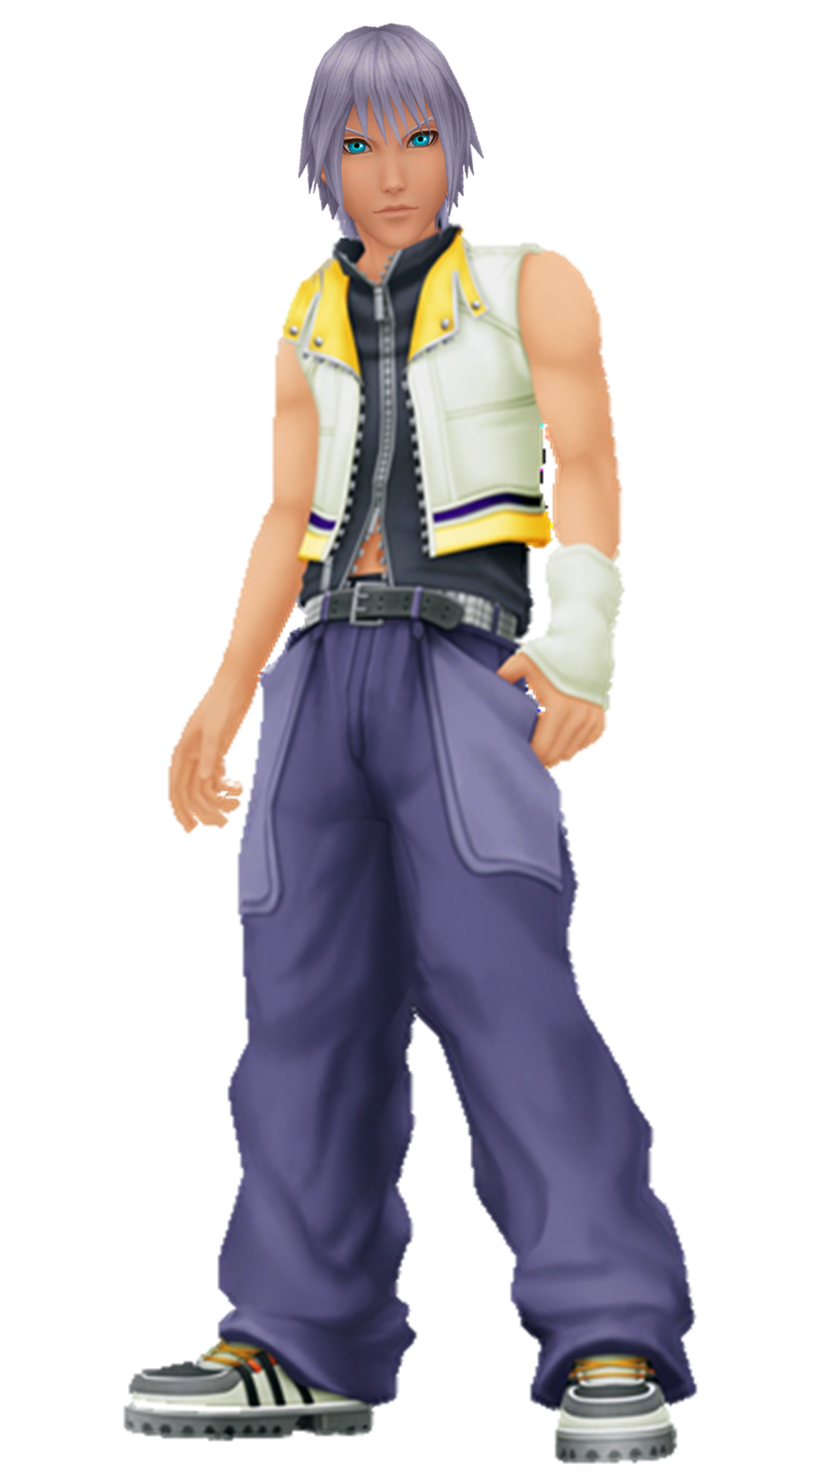 Kingdom Hearts 3D Dream Drop Distance images Riku Short Hair Face Version HD  wallpaper and background photos - Pants PNG HD